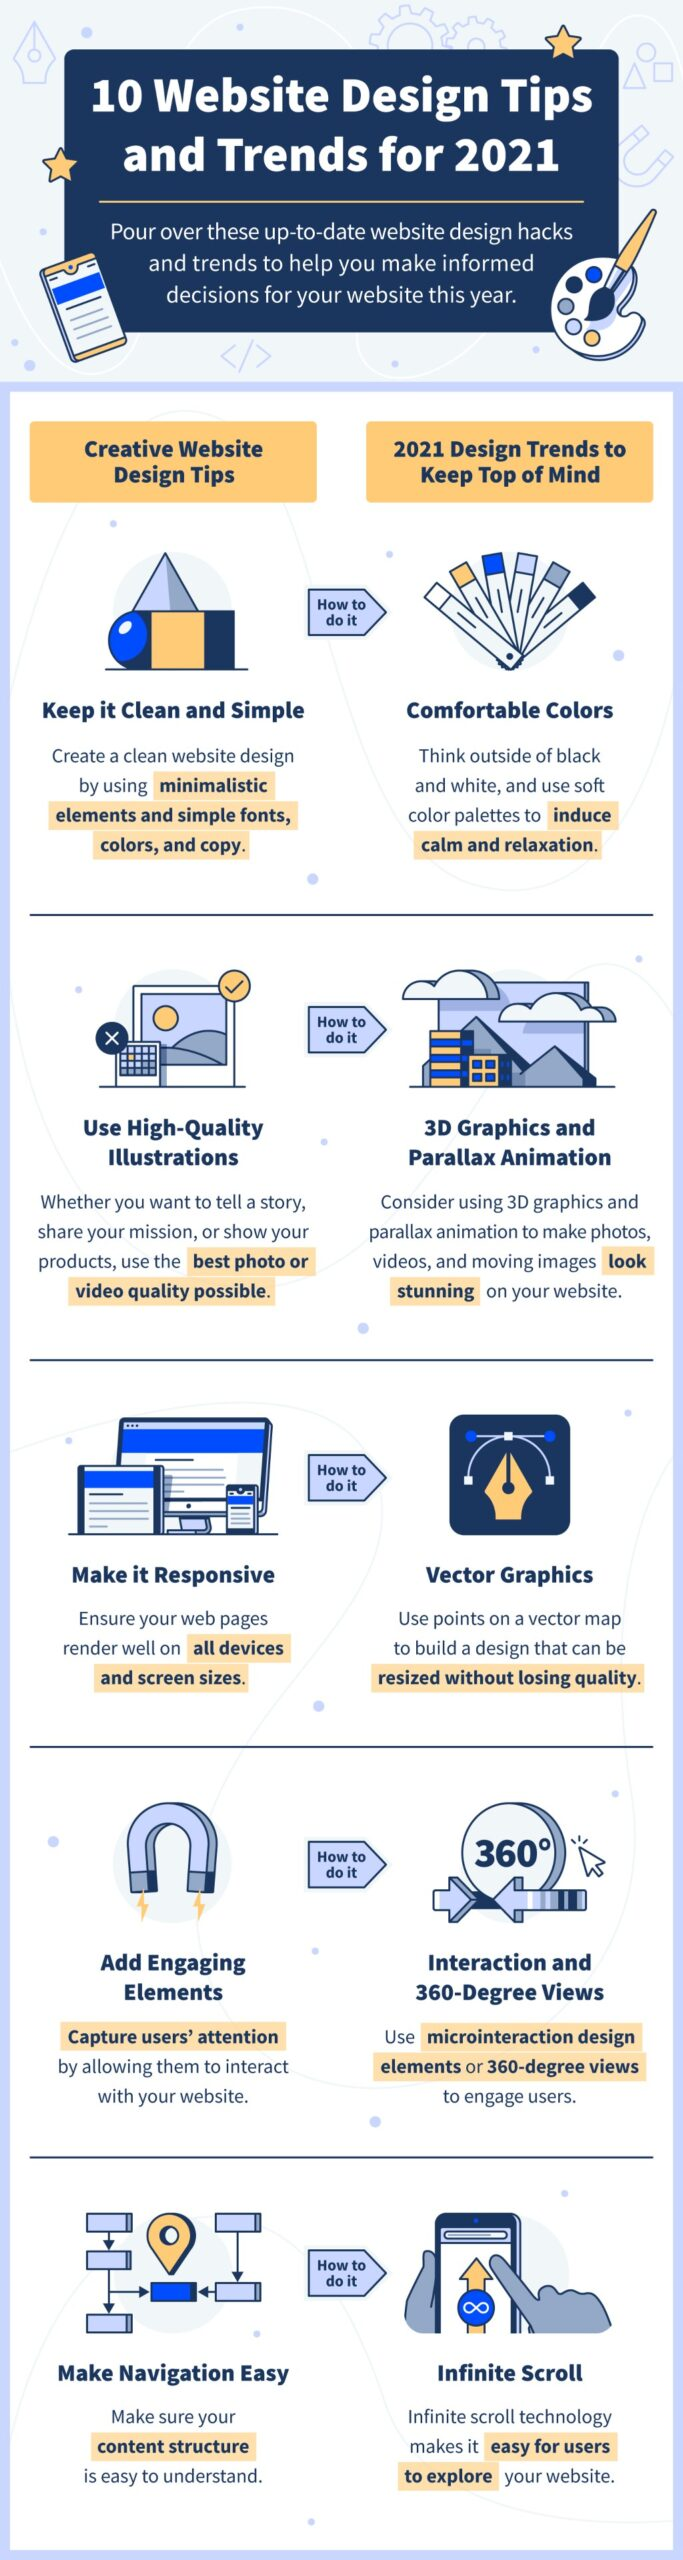 10 Website Design Tips and Trends for 2021